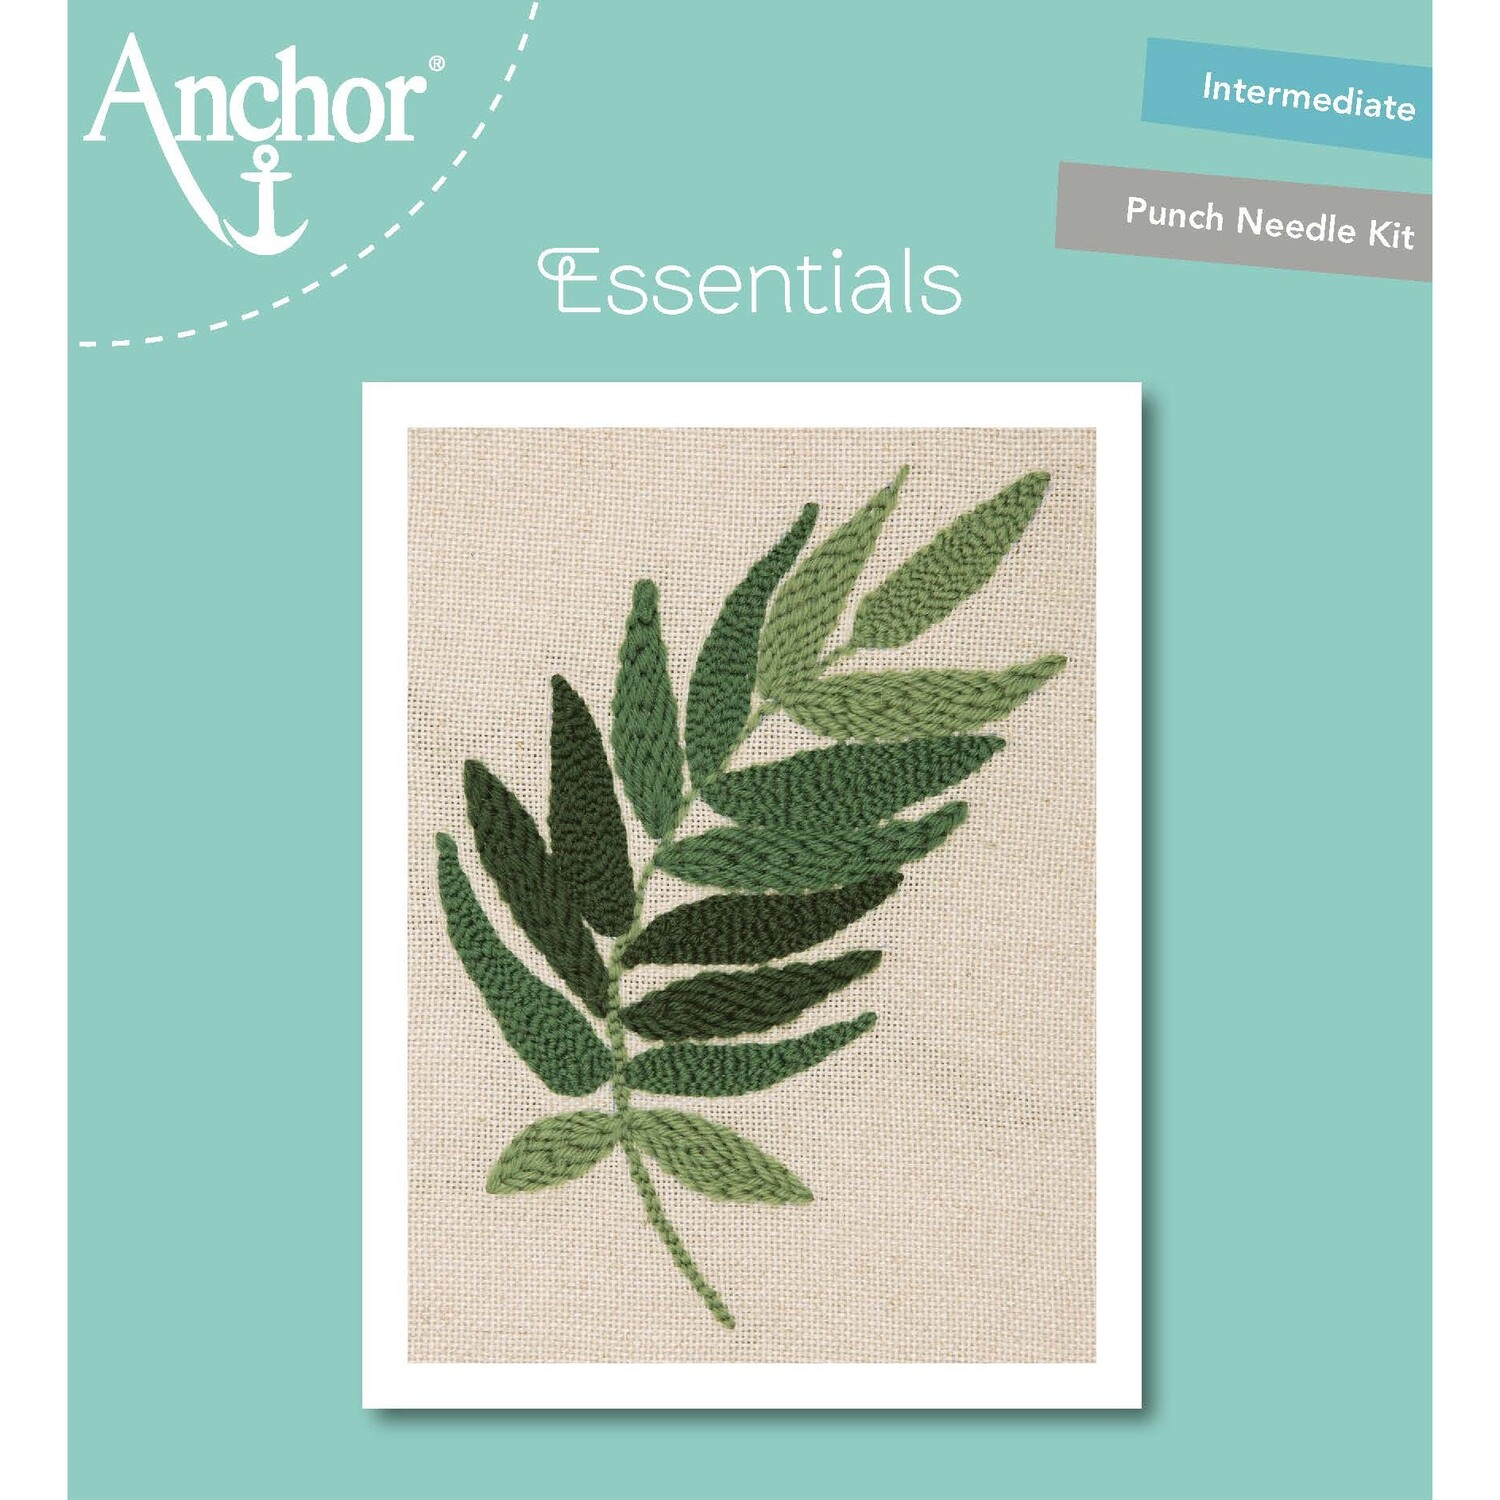 Anchor Essentials Punch Needle Kit - Palm Leaf (20 cm)